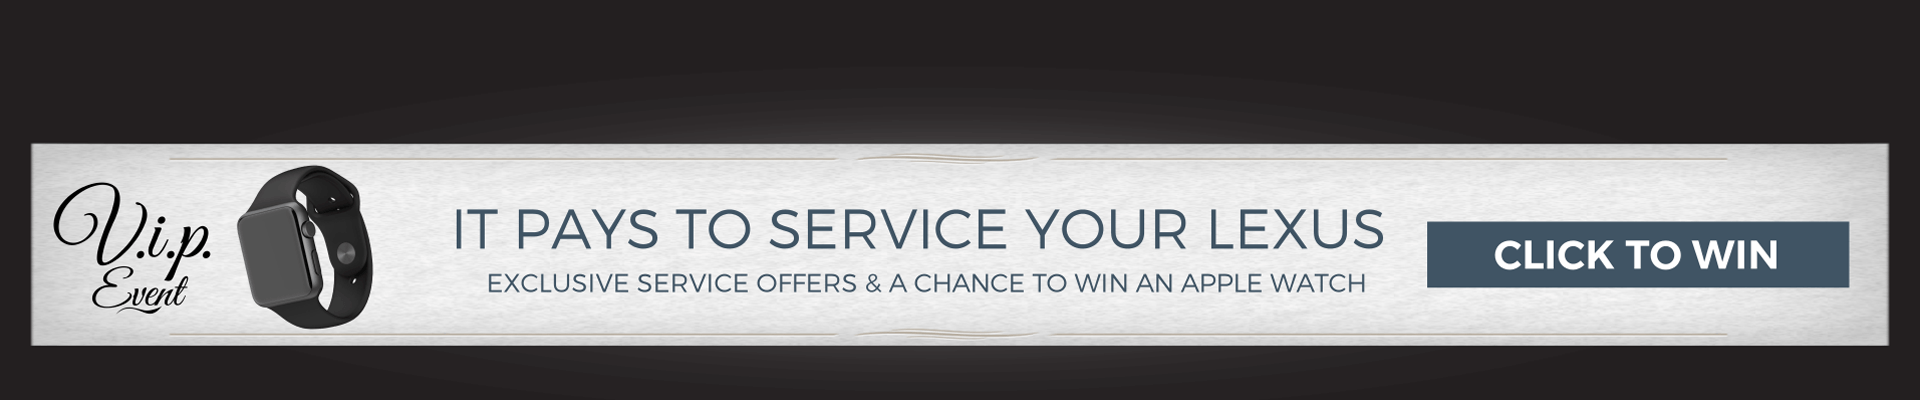 Service your lexus to win an Apple watch